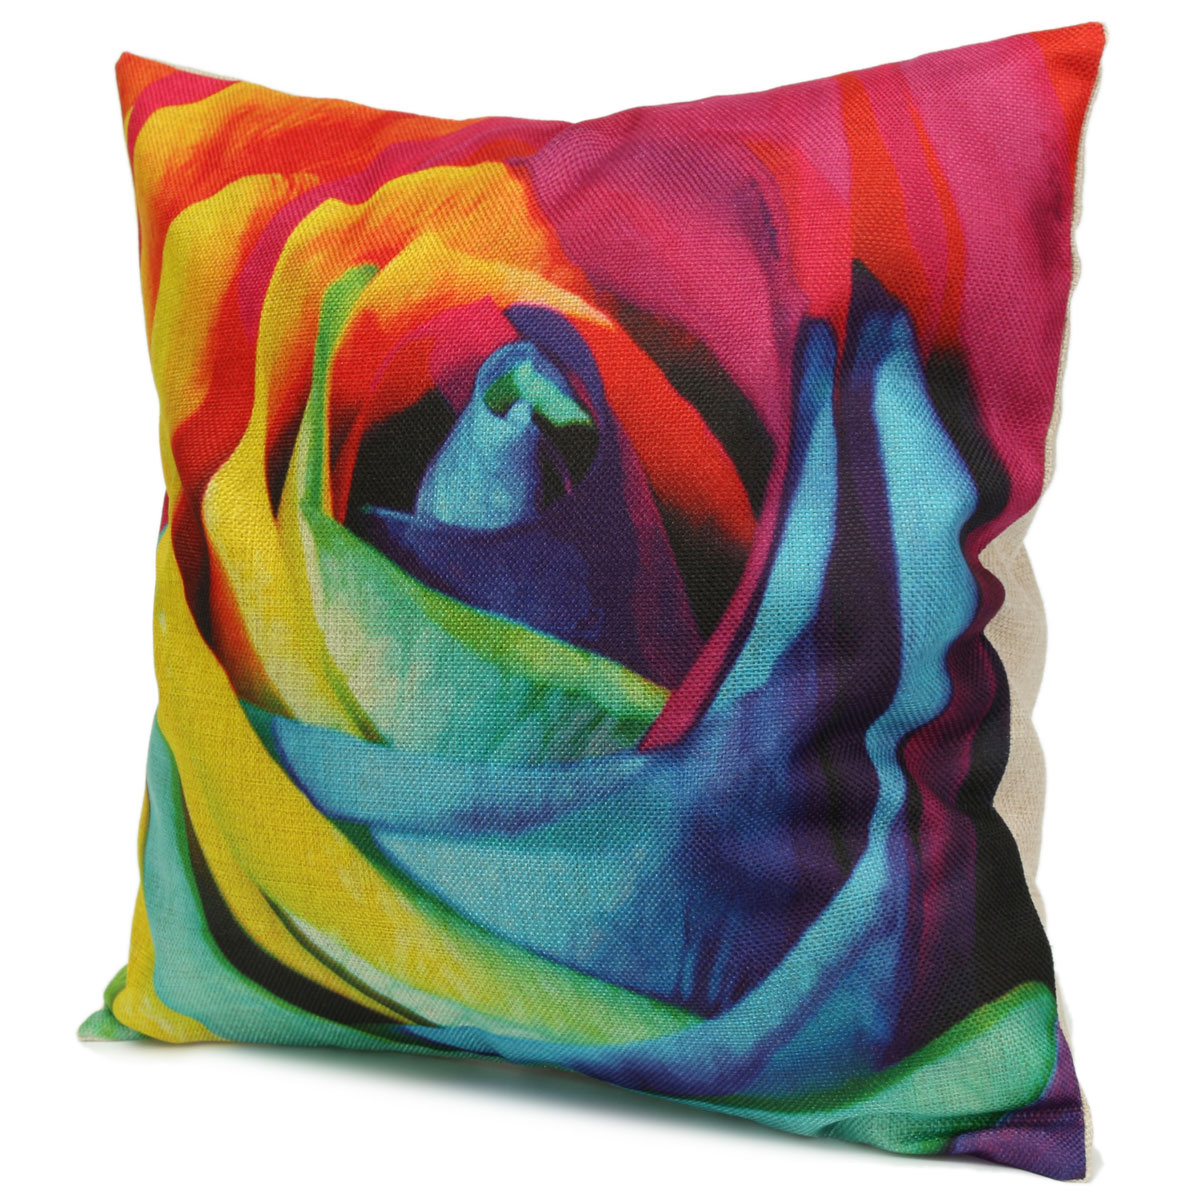 Modern Abstract Pillow : Modern Abstract Cotton Linen Pillow Case Sofa Throw Cushion Cover Home Decor eBay